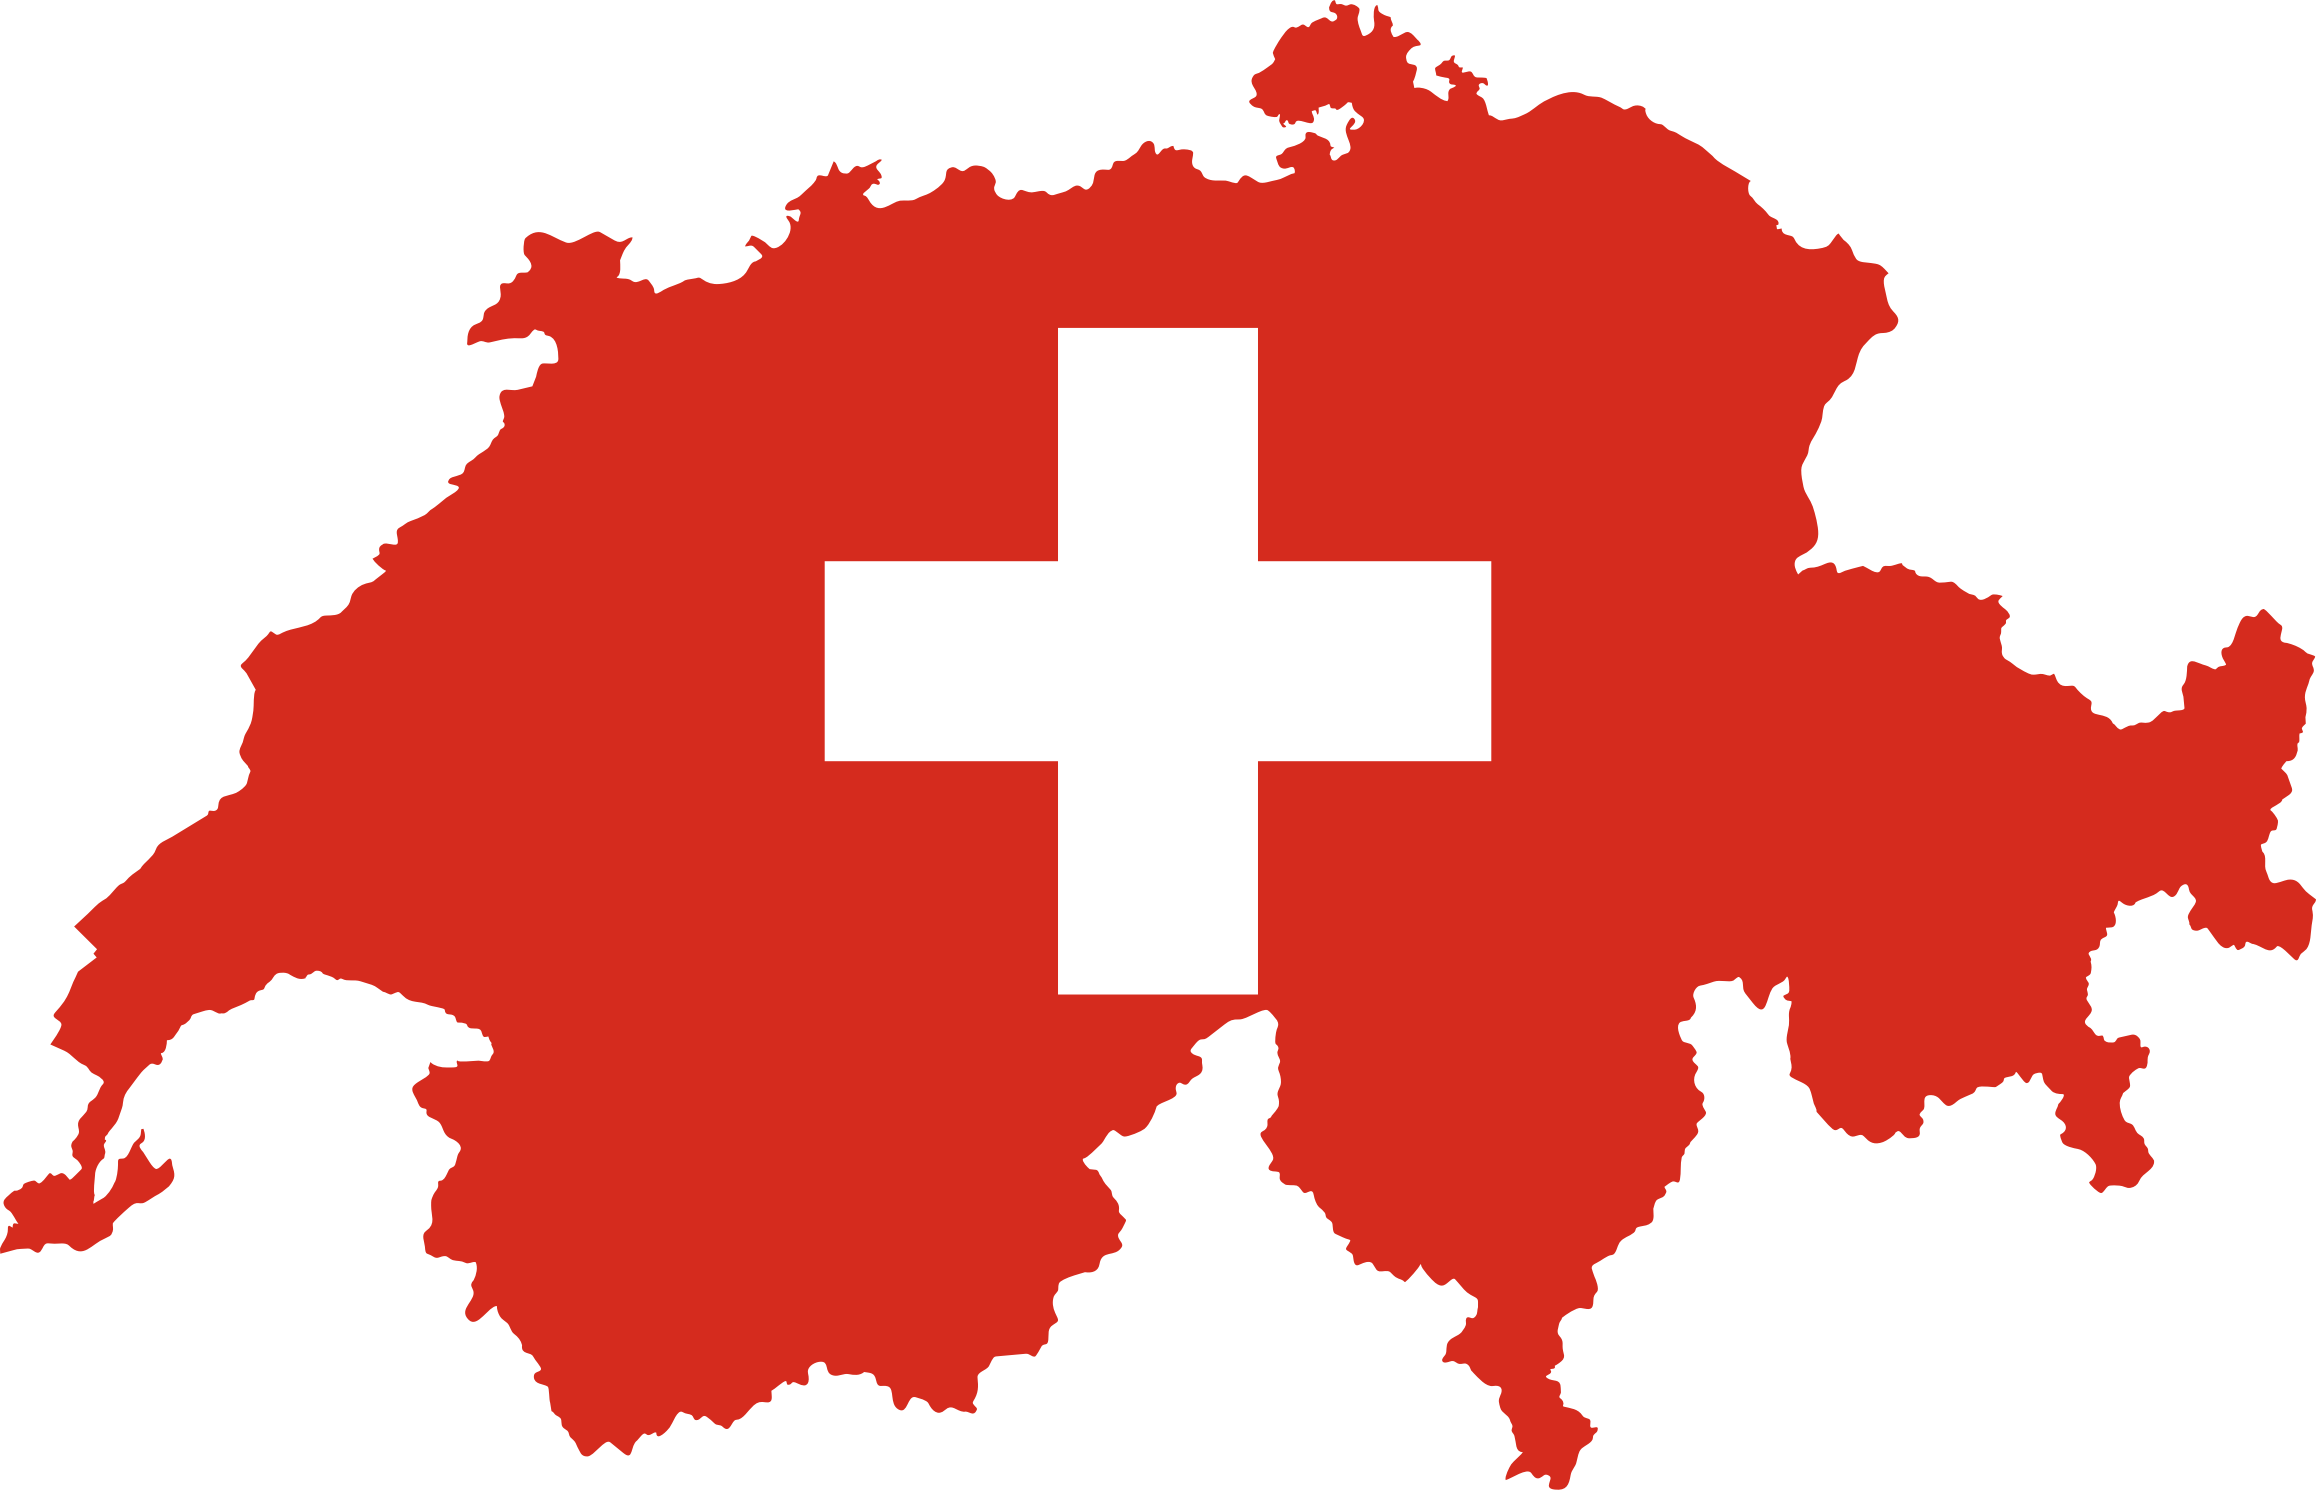 Swiss Flags (Switzerland) from The World Flag Database